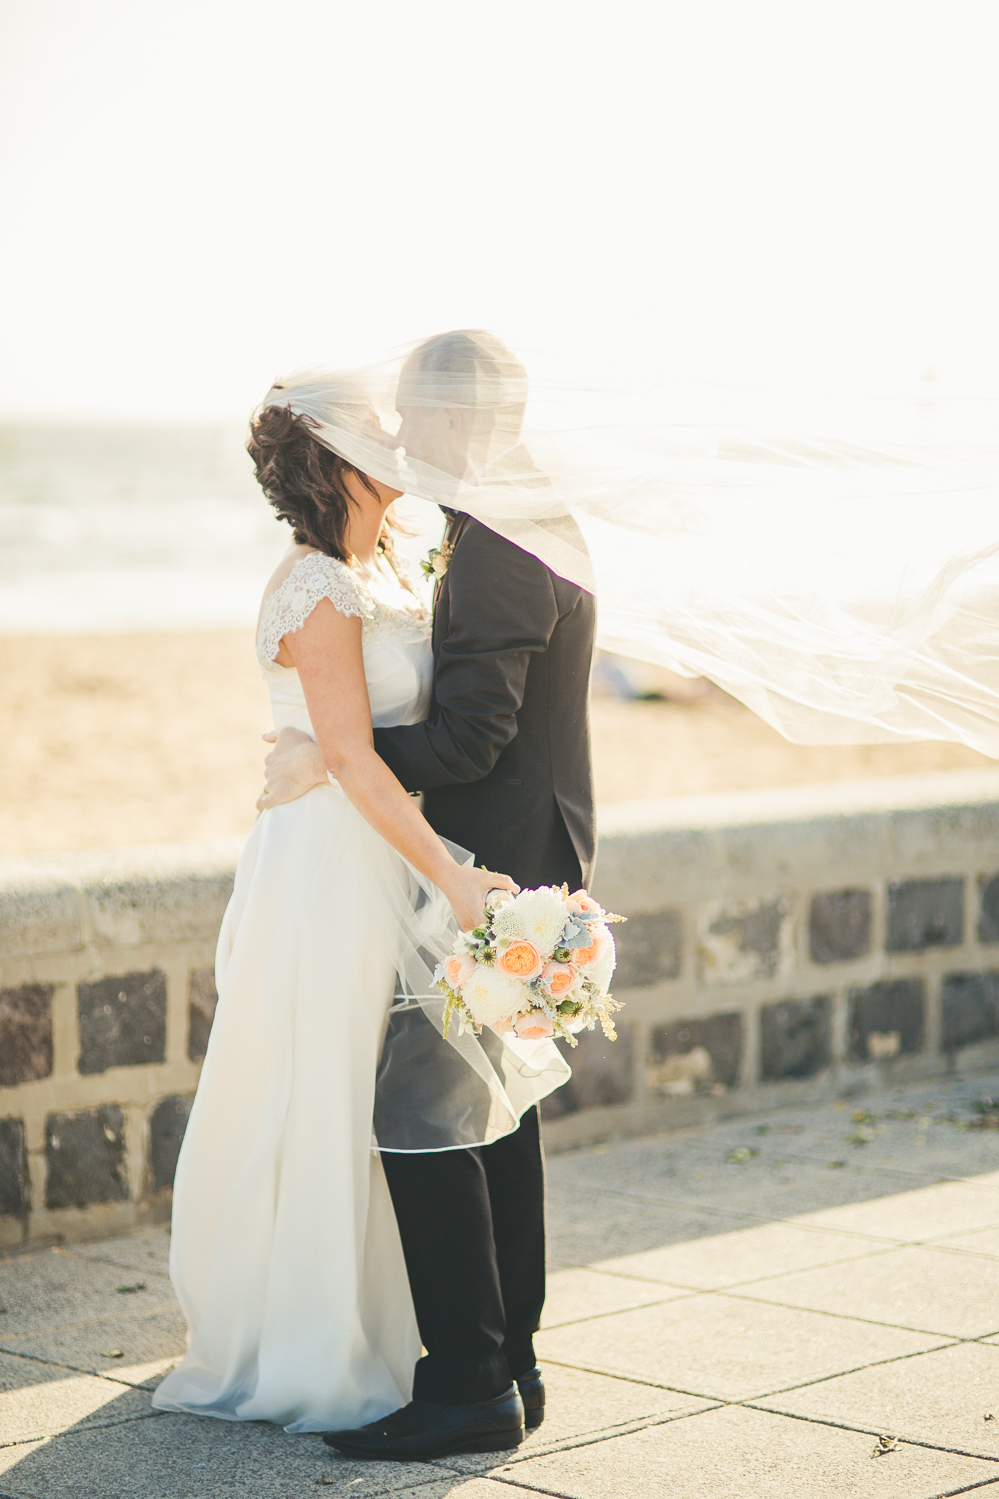 Powerwedding-520.jpg